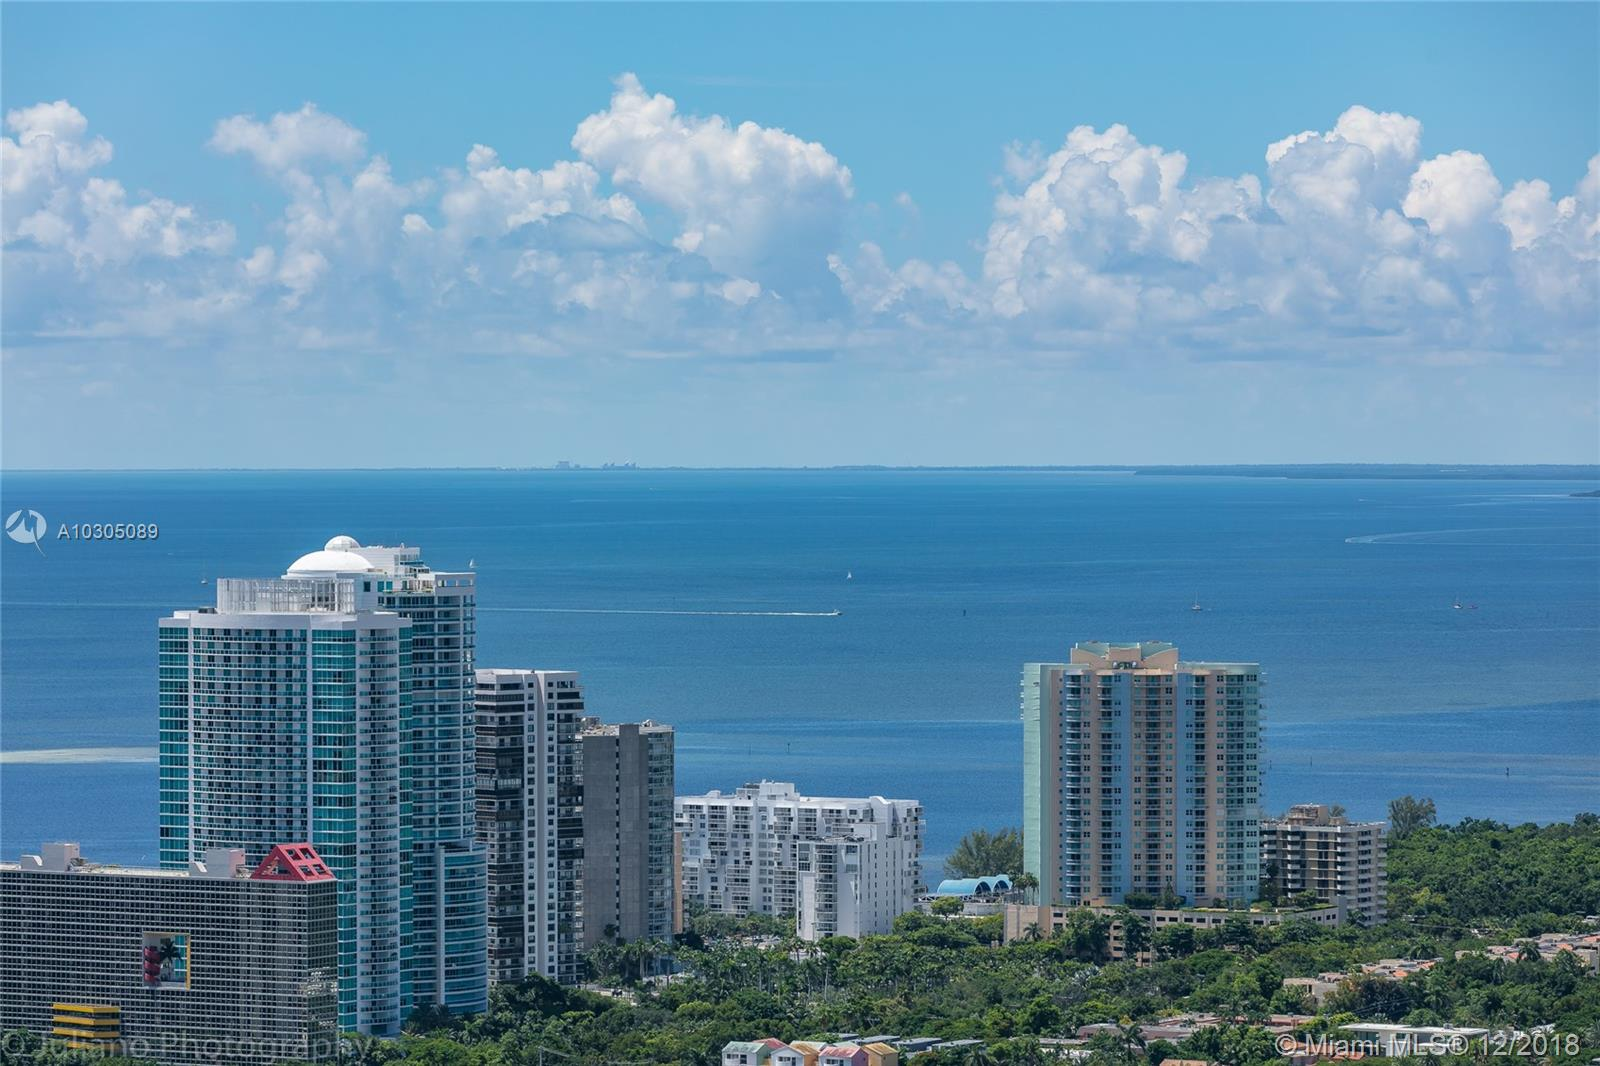 Motivated seller, Brickell Heights is the hottest residence tower in Brickell today! This residence is an amazing 3 Bedroom plus den with 3 and 1/2 bath, assigned Storage Space and two parking garage.  Upper Penthouse with BREATHTAKING water & skyline views. The impressive views reach from Biscayne Bay, over Key Biscayne into Coconut Grove and Coral Gables. The residence features top of the line Bosch and Sub Zero Appliances,  floor to ceiling 14' windows. The wrap around balcony is an extension of the living space.  Smart technology. Just bring your toothbrush,custome made closets.  Don't miss out on one of the Few Upper PH in Brickell. Bring your best offer. FULLY FURNISHED